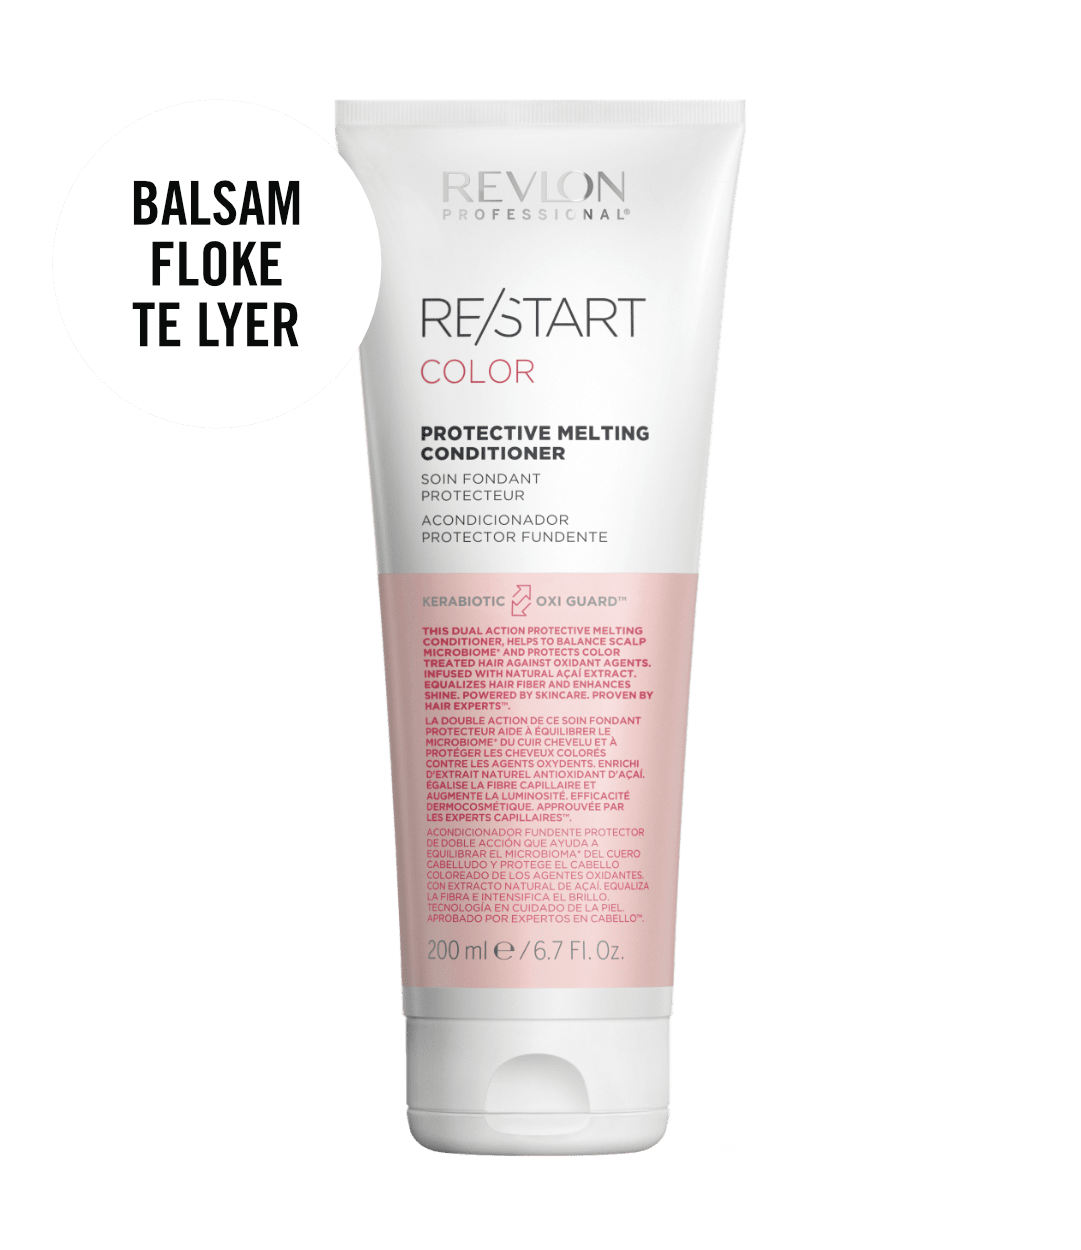 revlon professional RESTART COLOR MELTING CONDITIONER | Duo Cosmetics